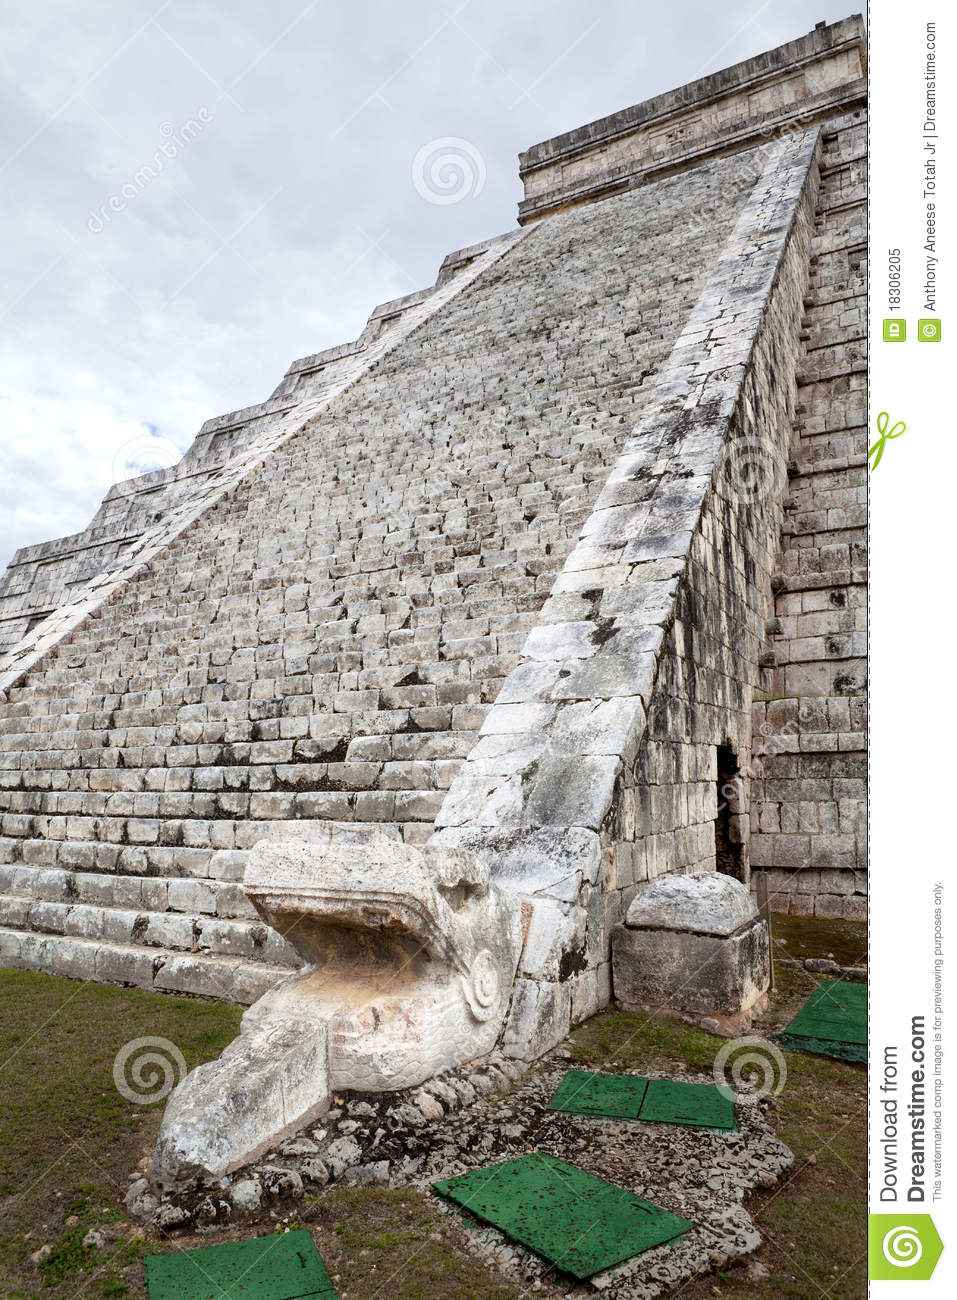 mayan architecture royalty free stock photo - image: 18306205